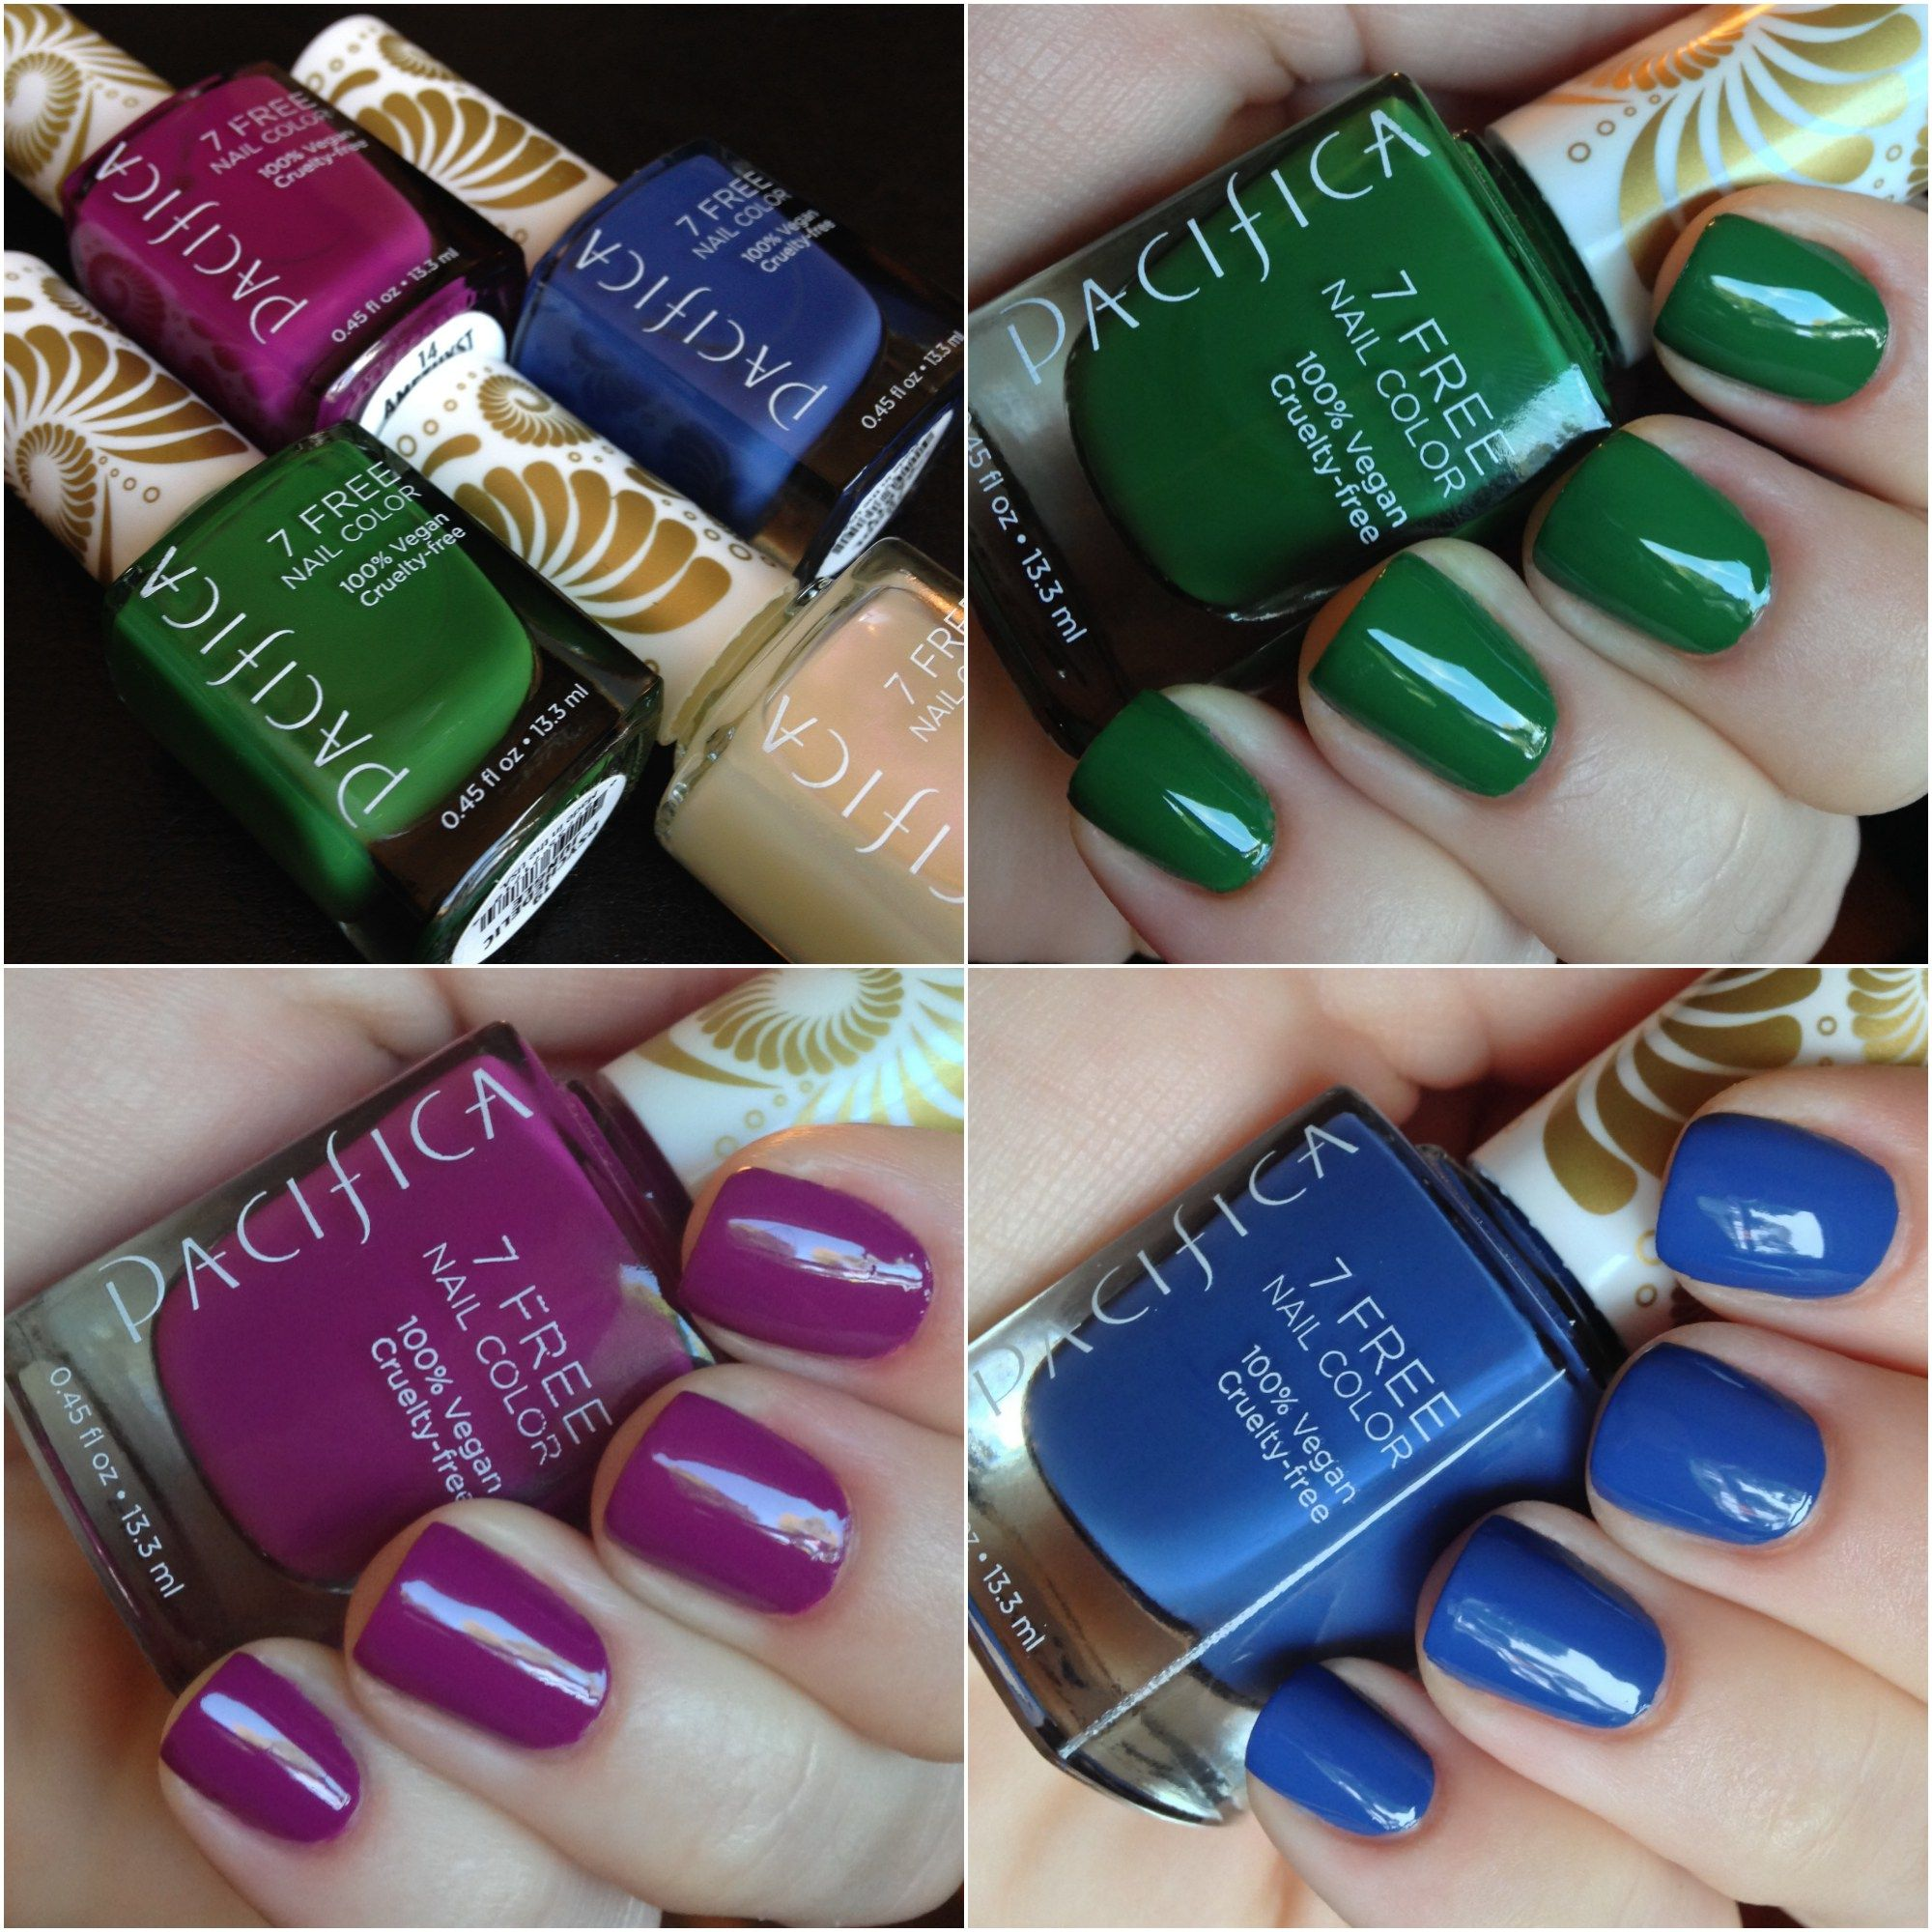 Pacifica 7 Free Nail Polish | Swatch and Makeup